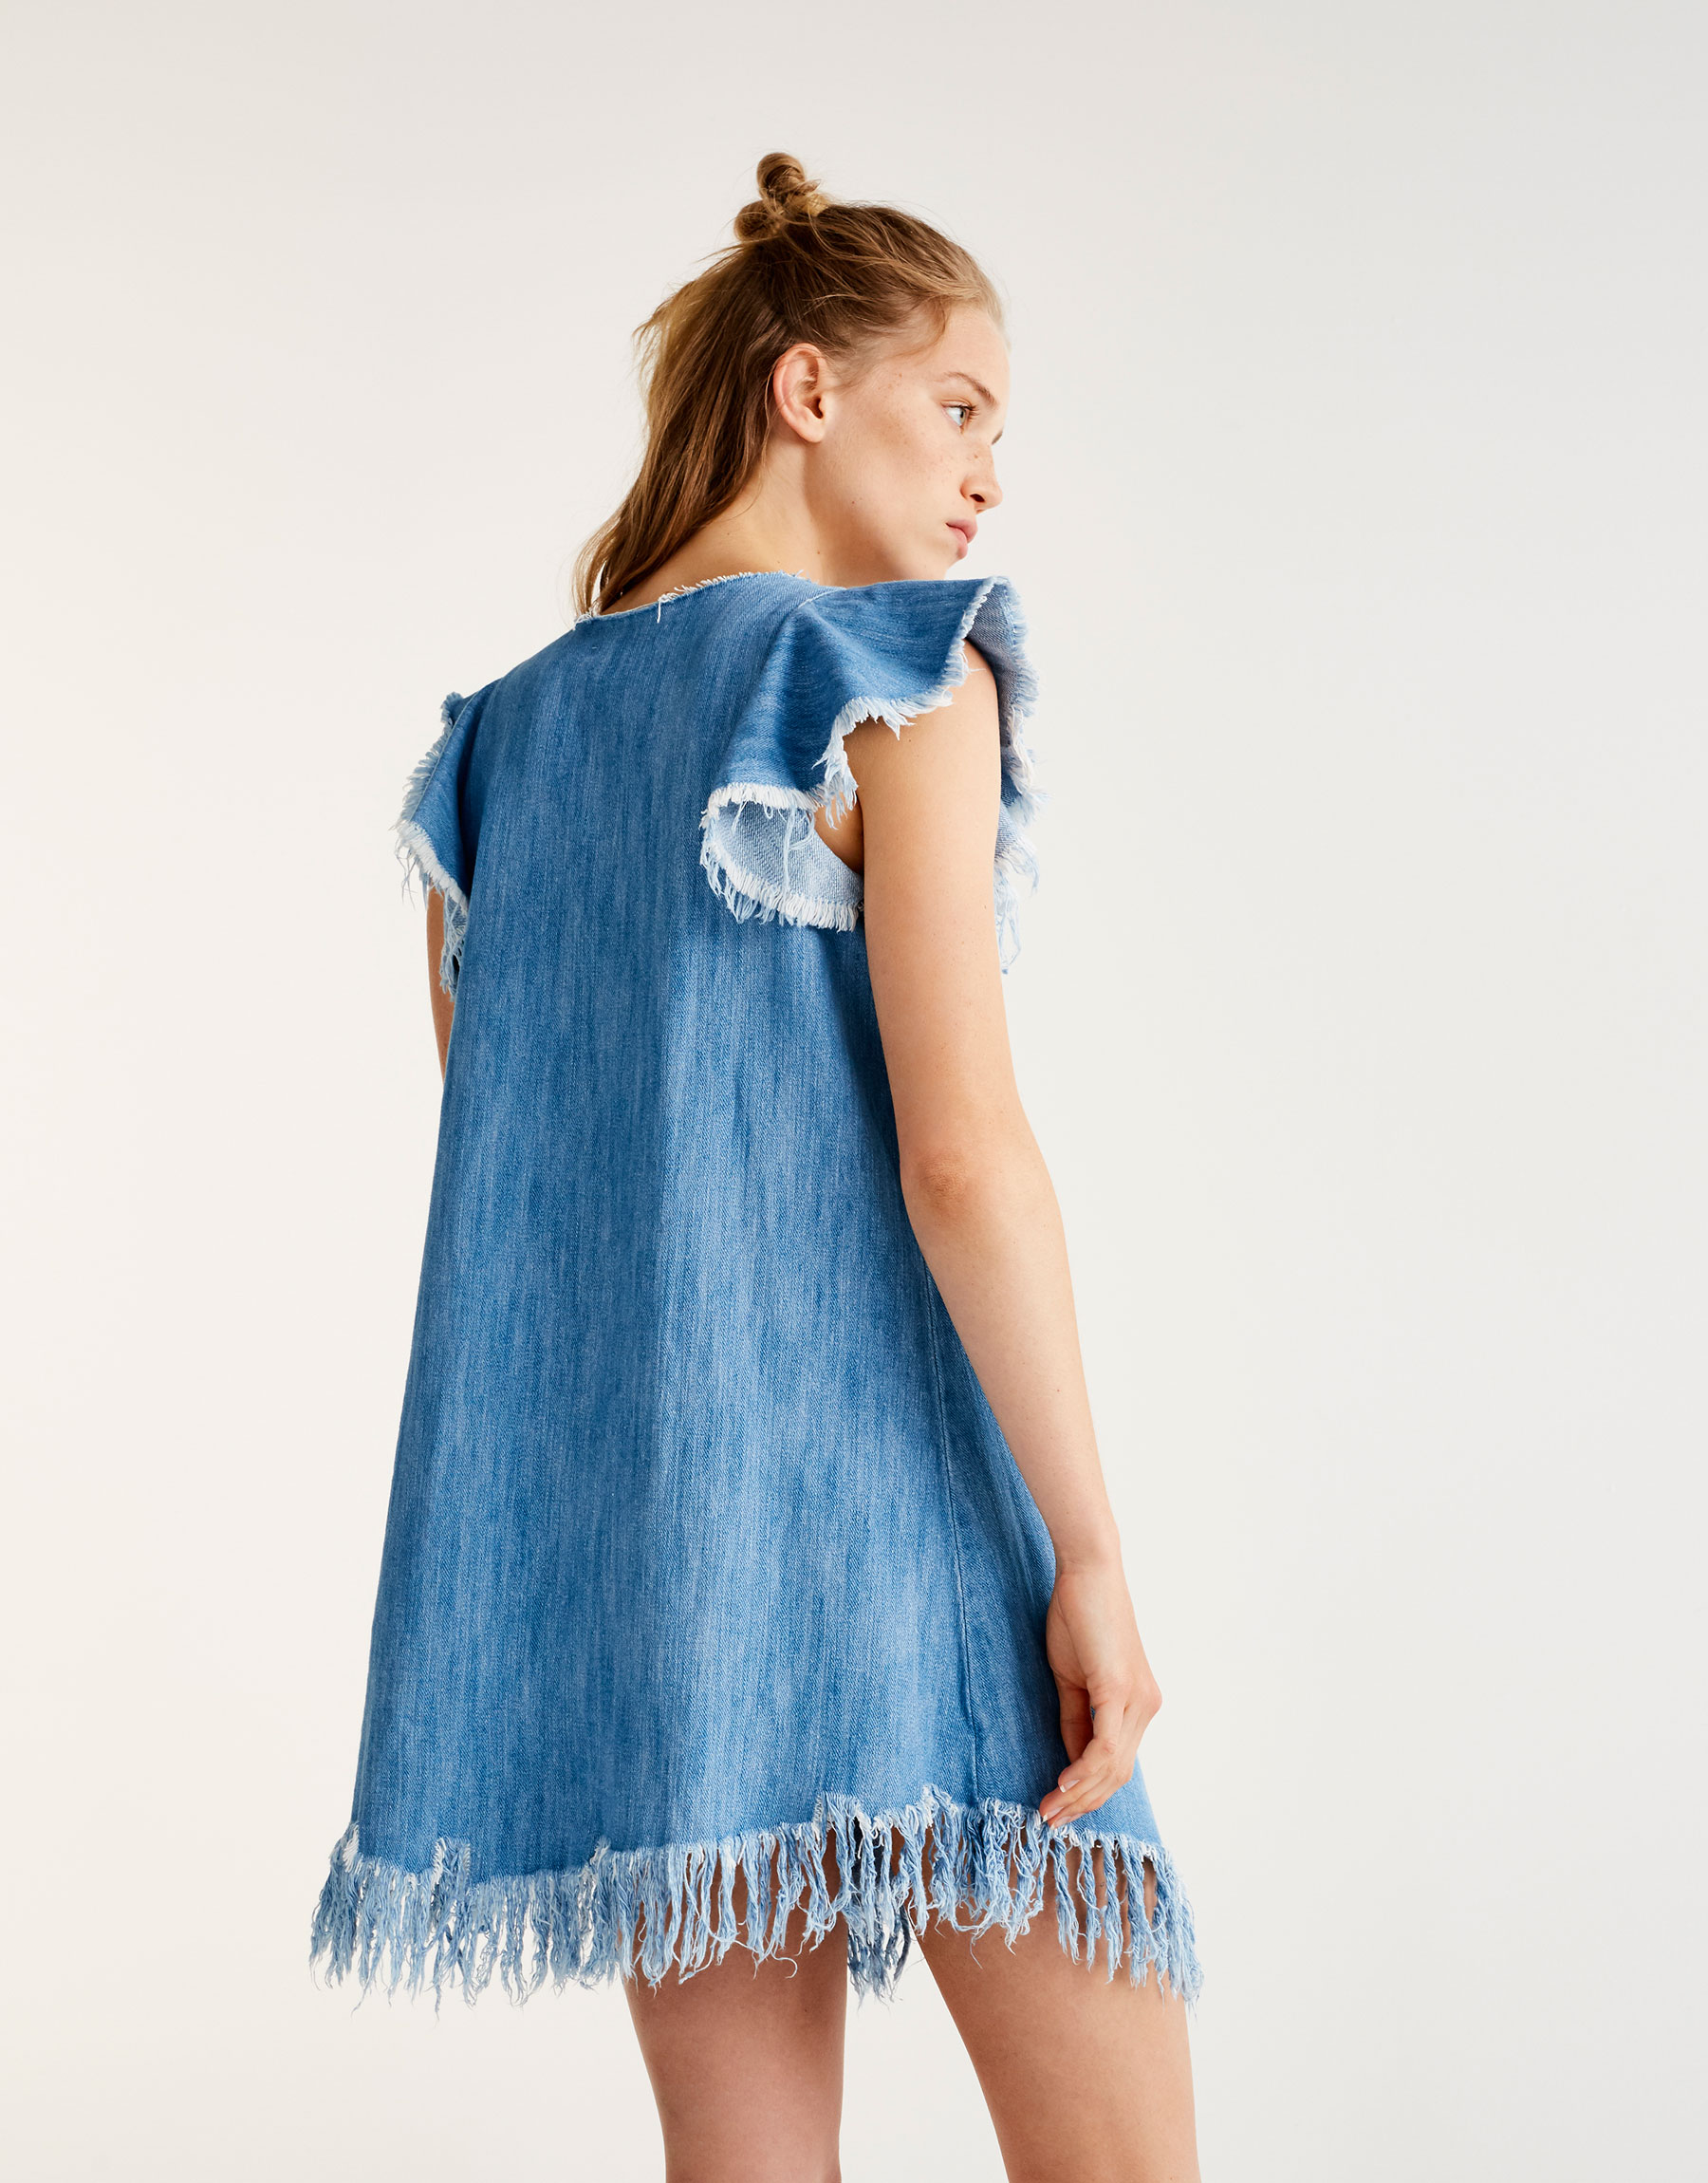 Frayed denim dress with ruffles